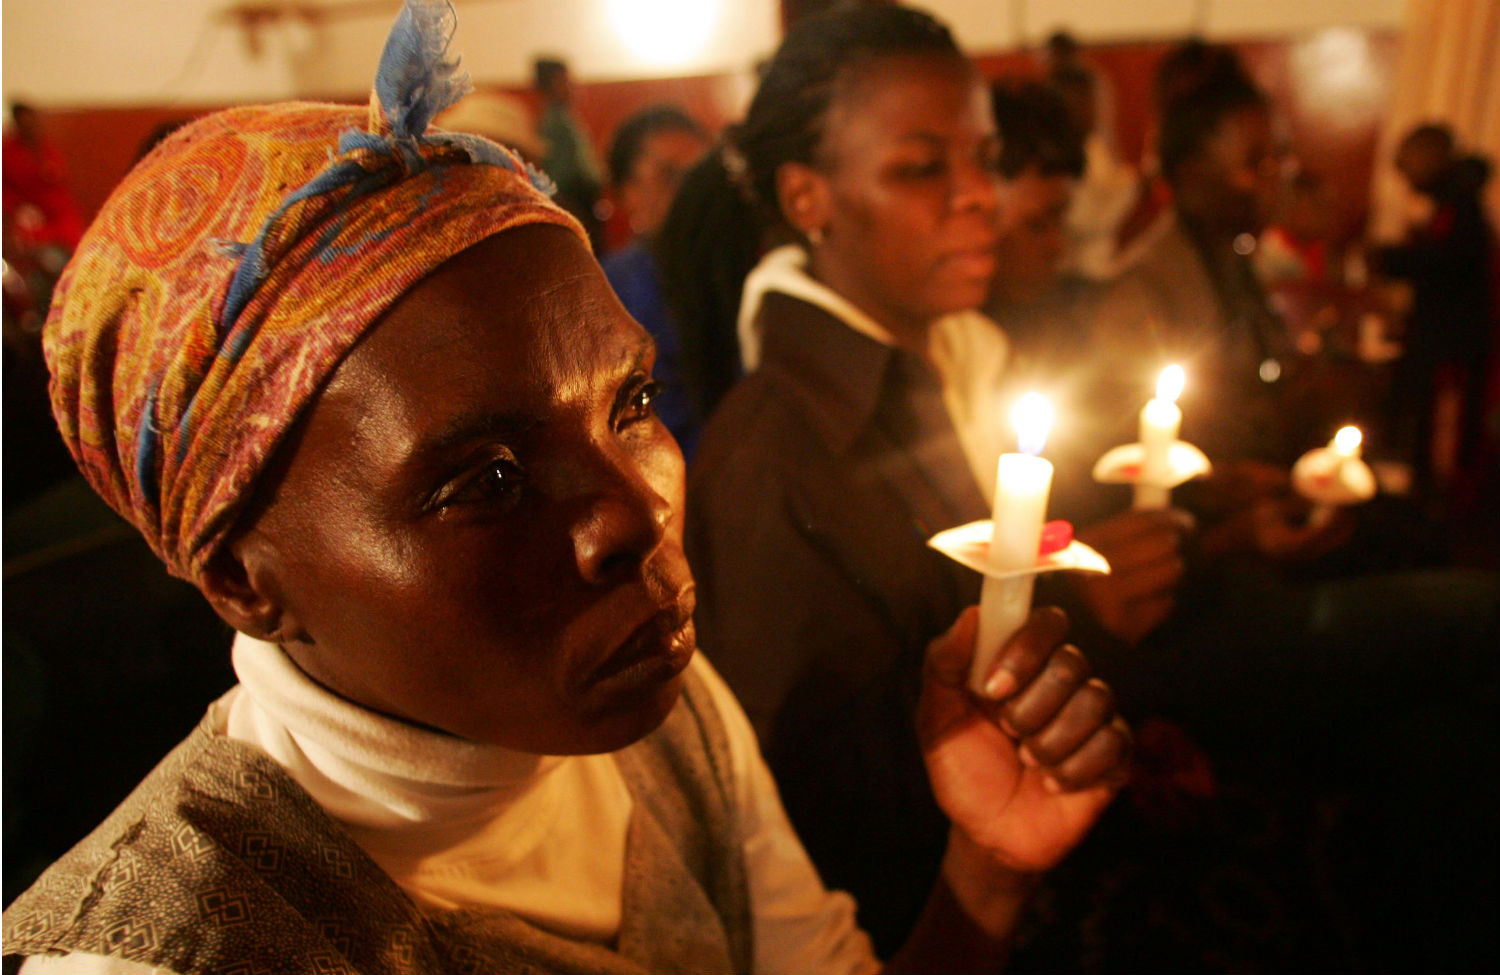 The-Campaign-Against-AIDS-in-Africa-Is-Saving-Lives—So-Why-Isn't-the-US-Investing-More-In-It